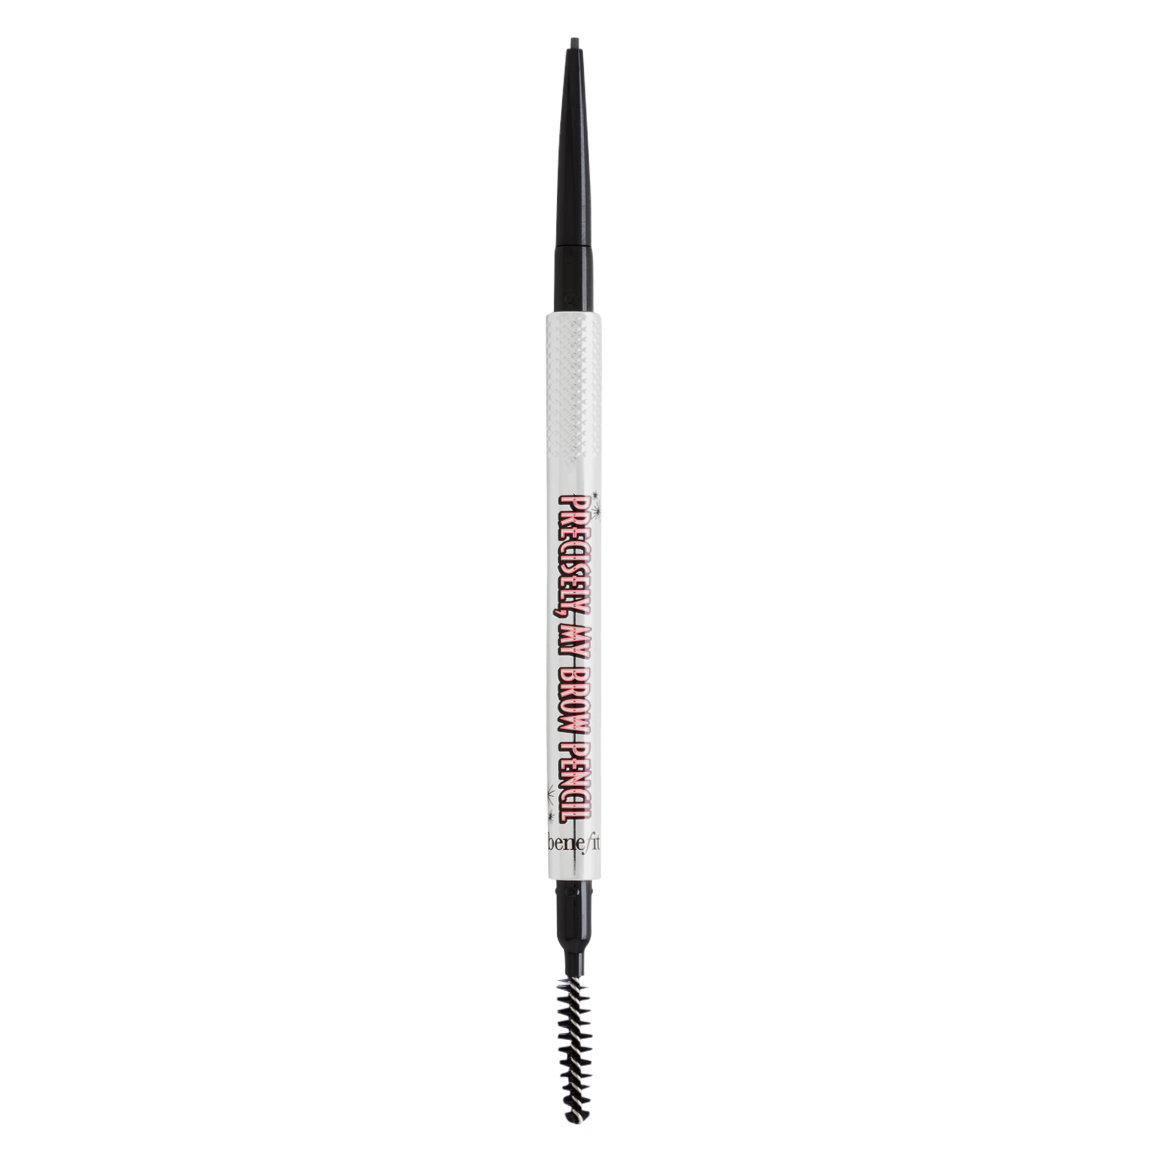 Benefit Cosmetics Precisely, My Brow Pencil Cool Grey